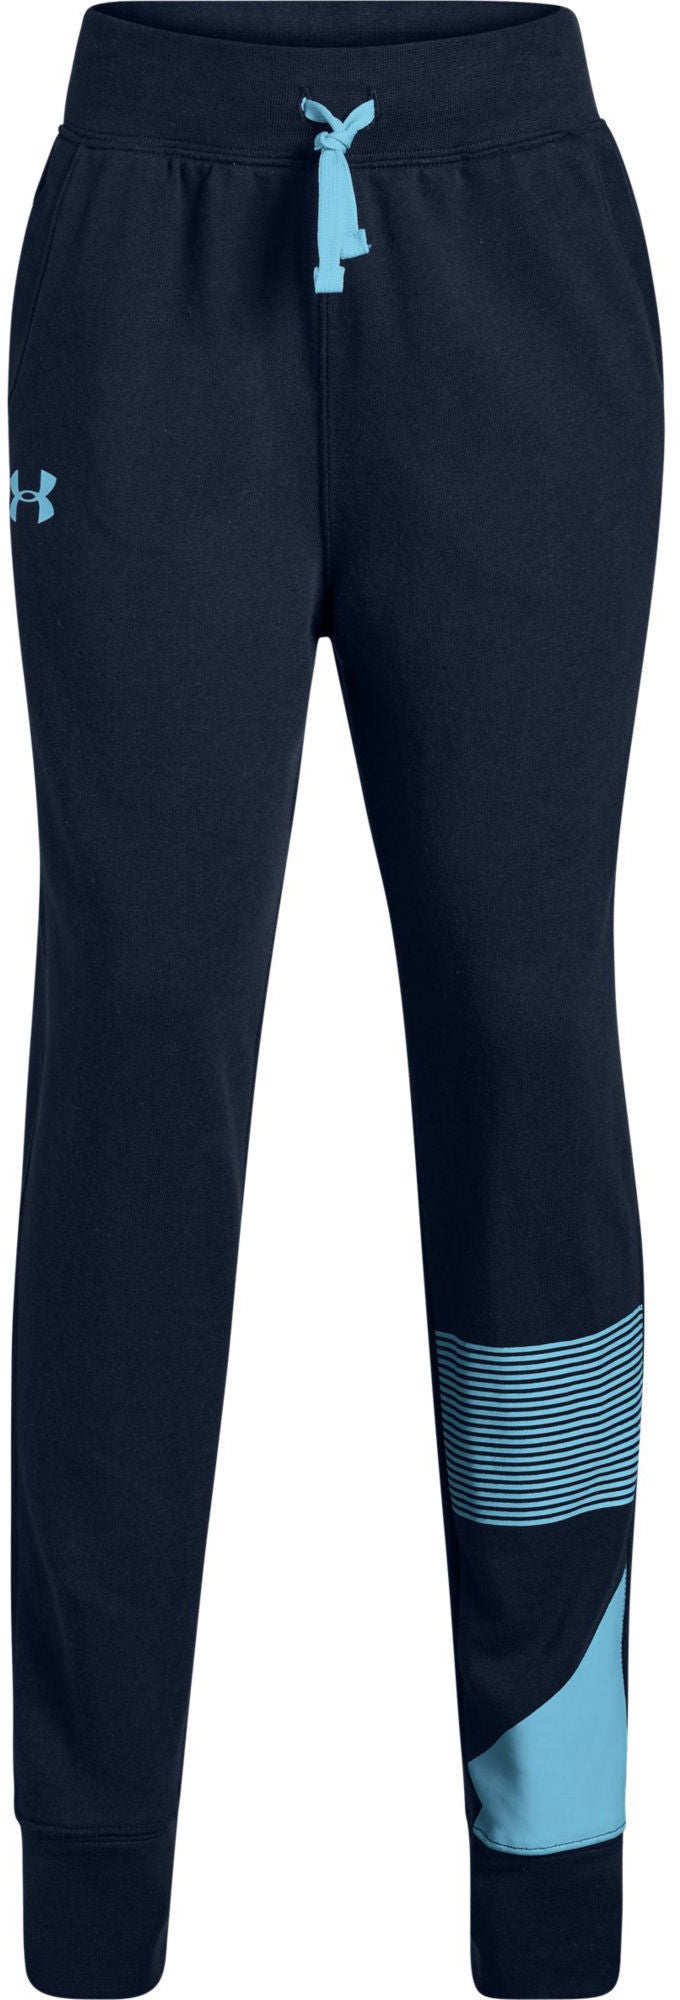 Under Armour Rival Jogger Byxor, Academy M